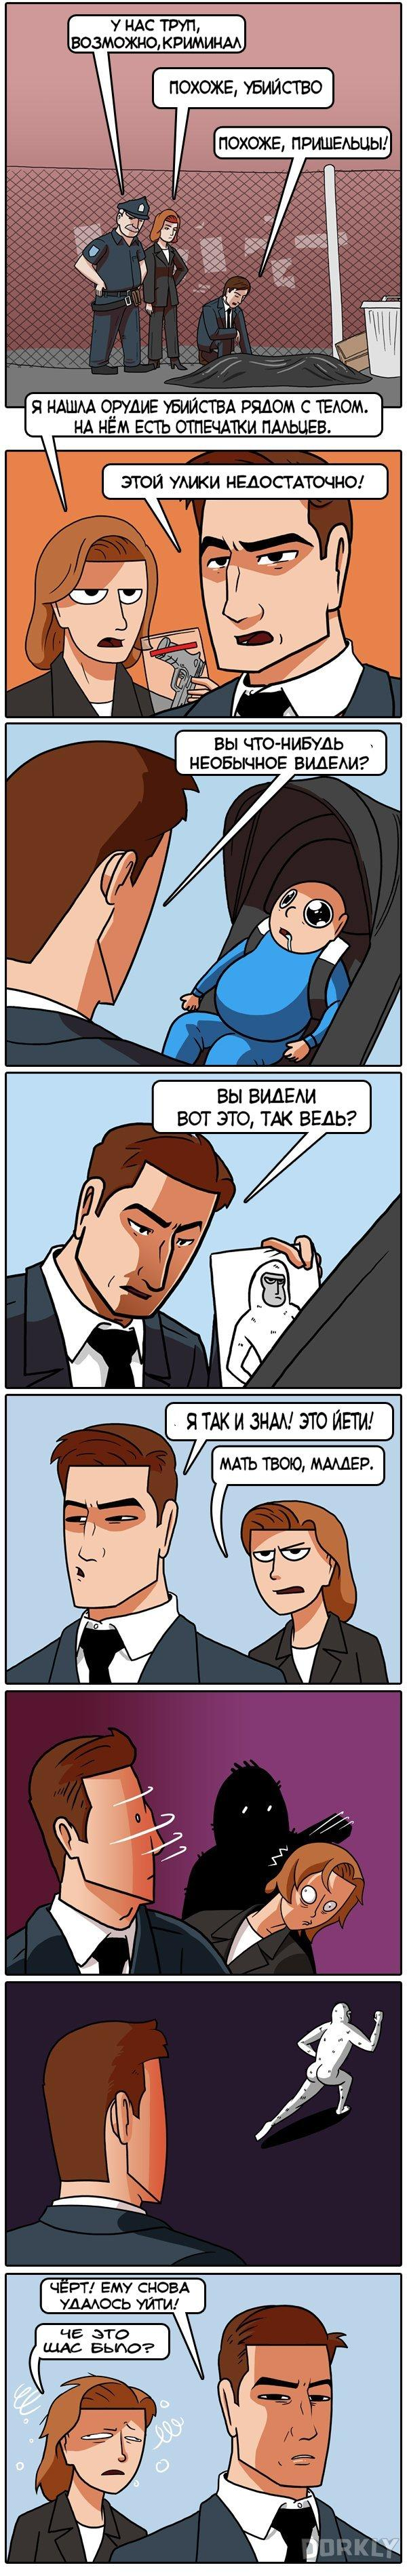 dorkly-x-files